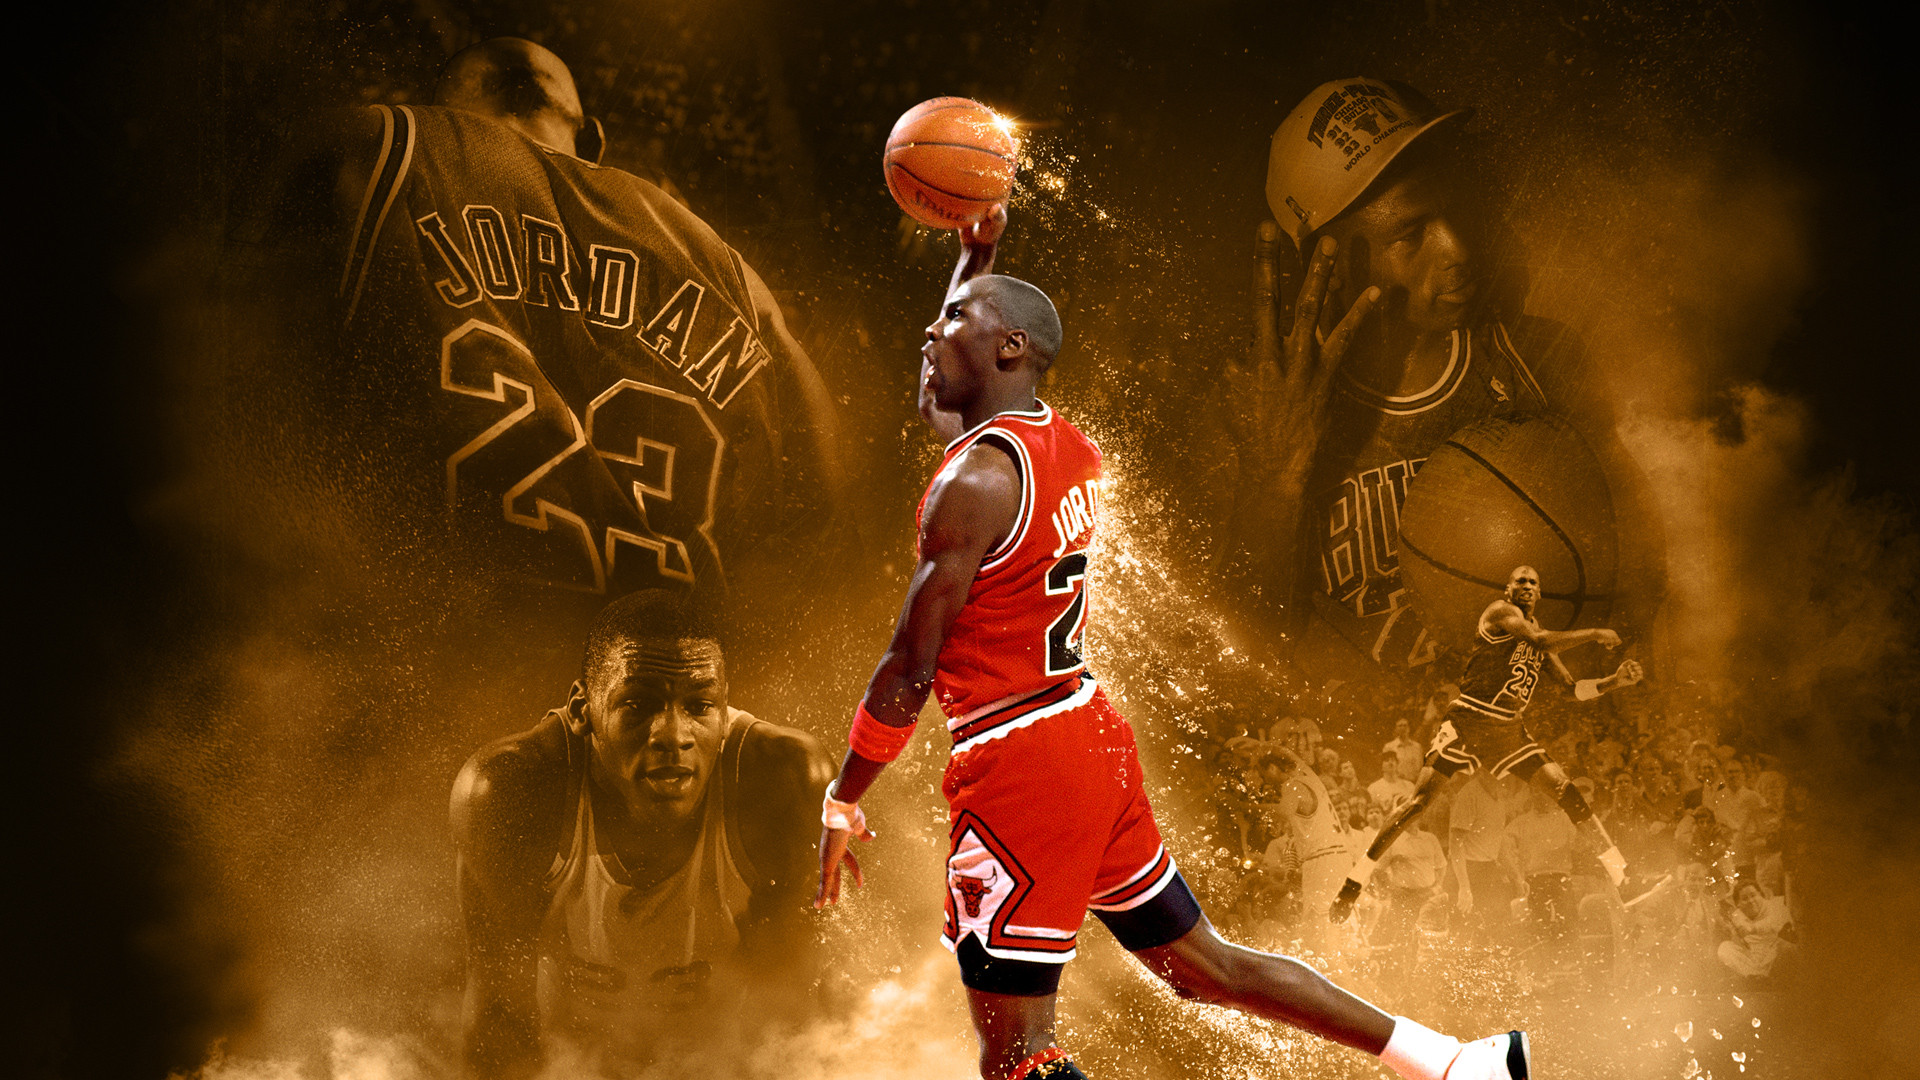 Iphone Wallpaper Epic Cool Basketball Wallpapers